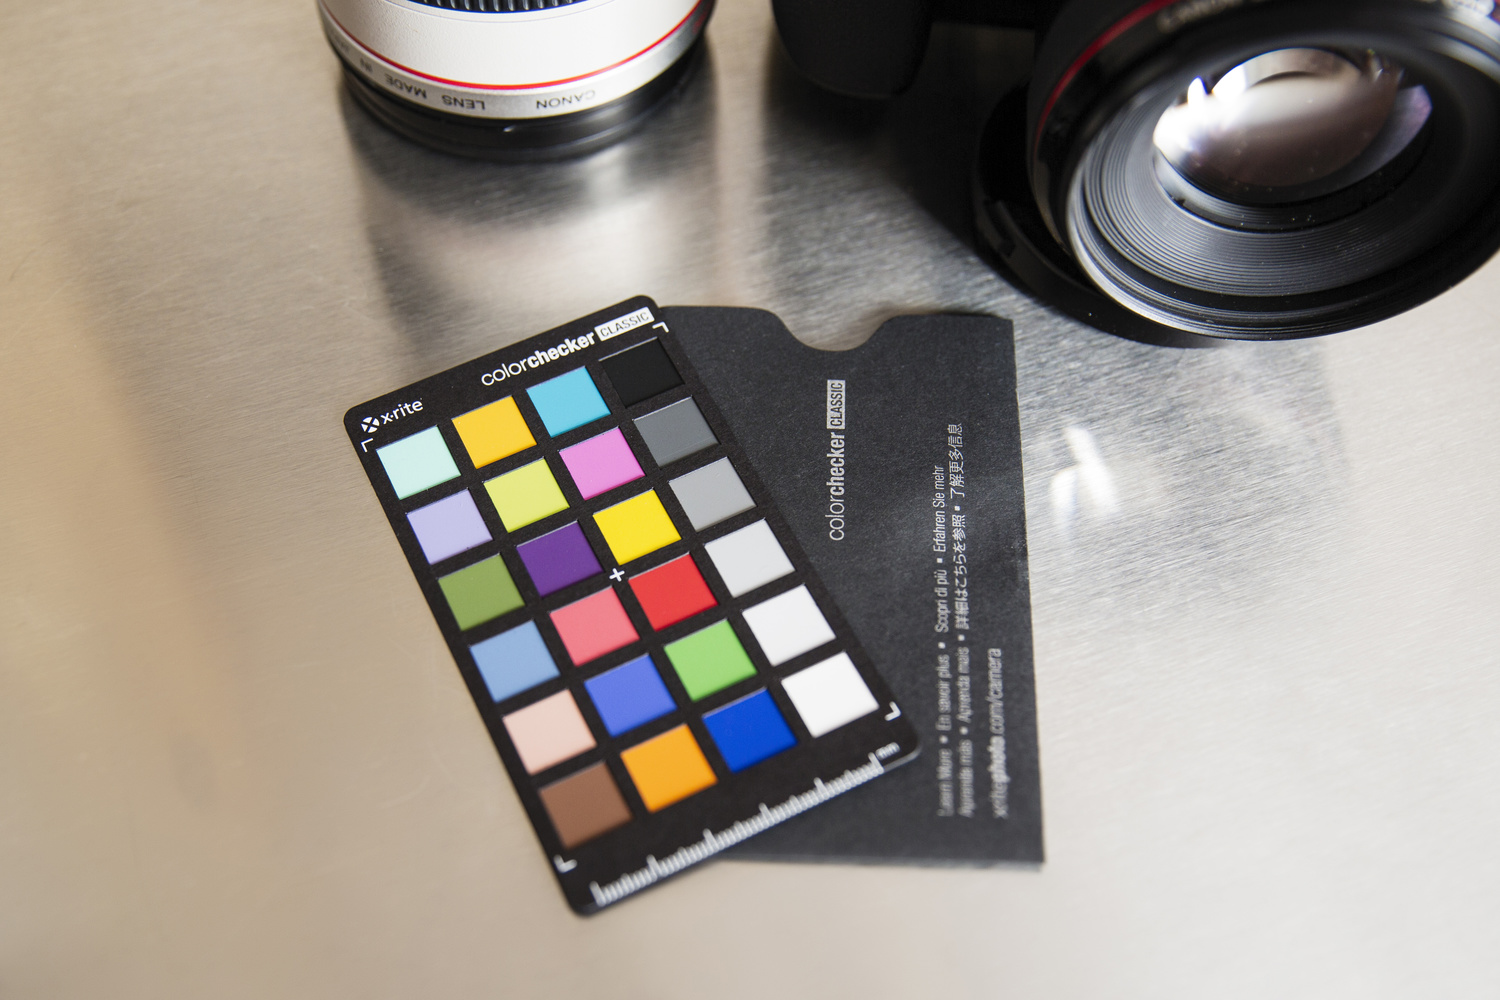 Fstoppers Reviews the X-Rite i1Studio Color Management